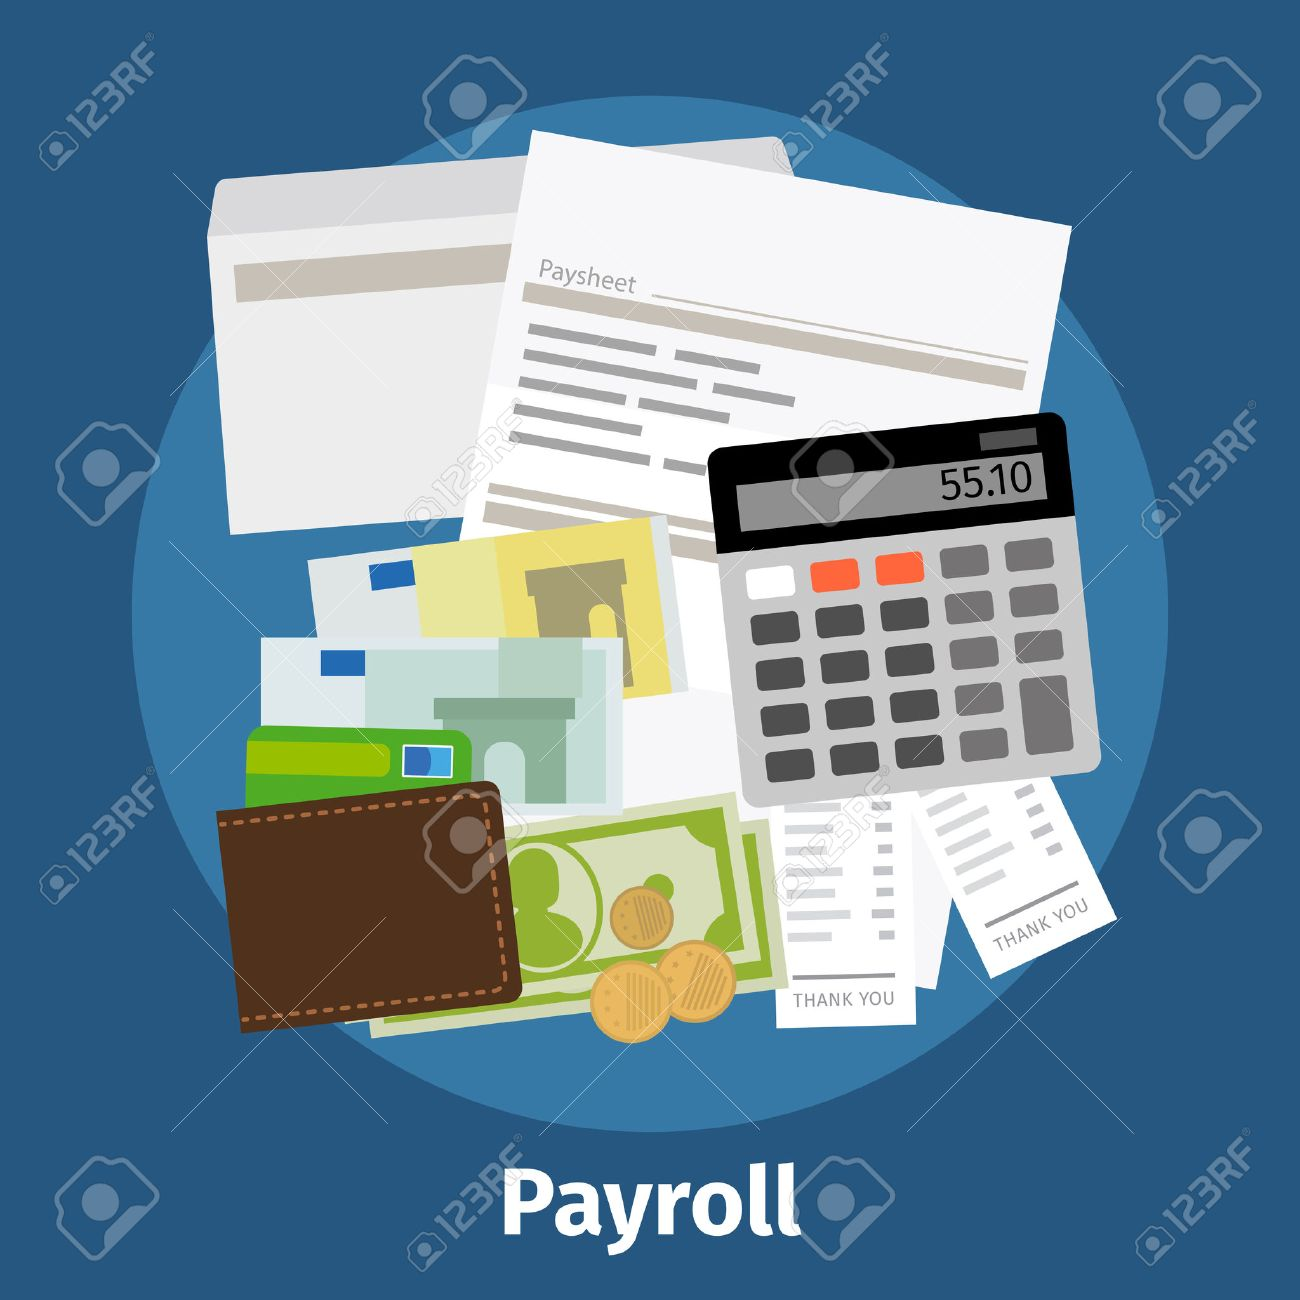 Invoice Sheet, Paysheet Or Payroll Icon. Calculating And Budget ...